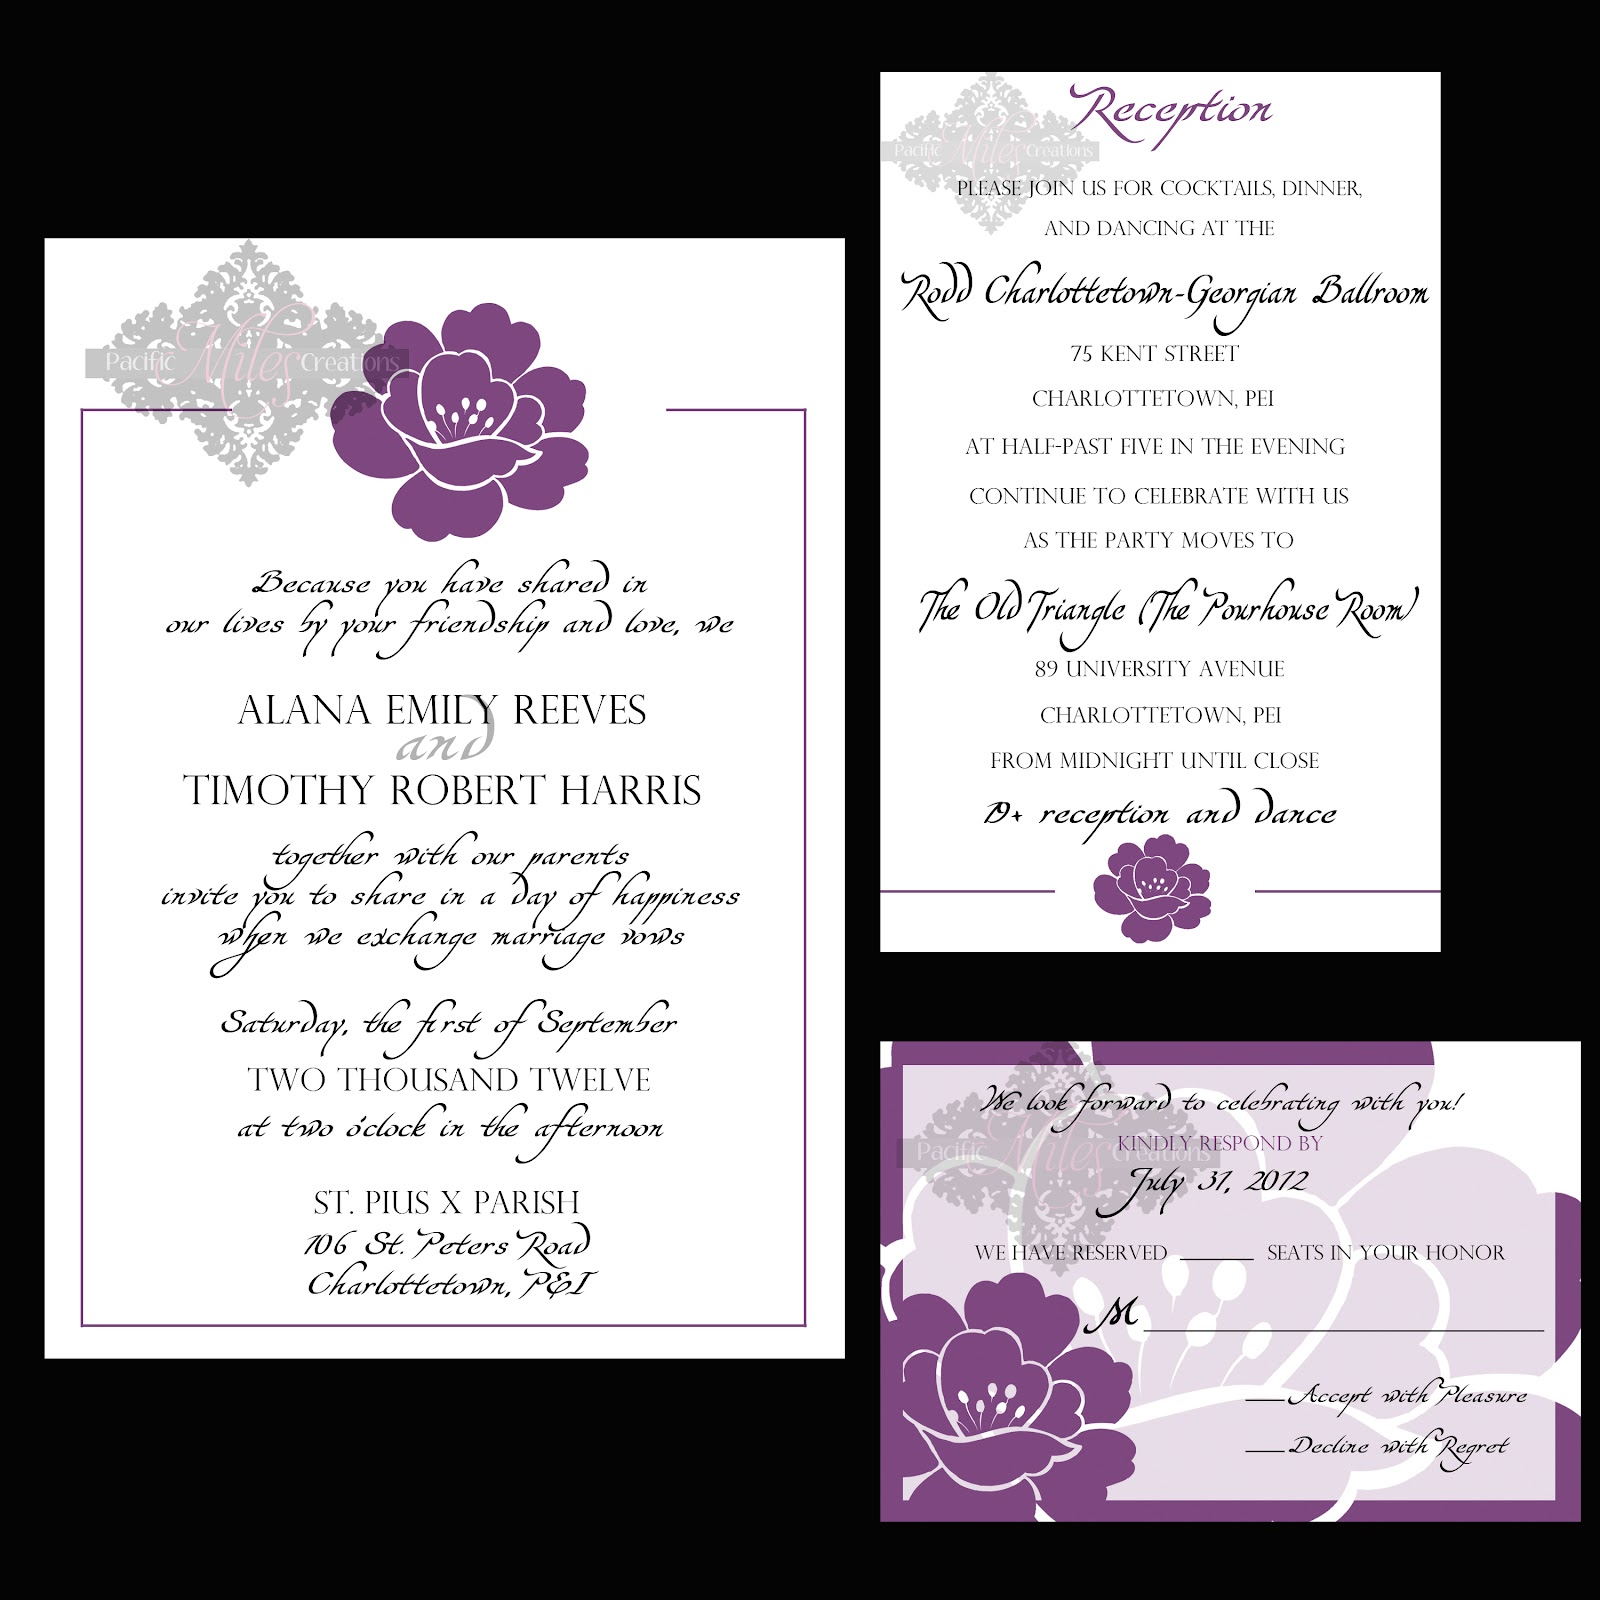 Wedding Party Invitations: Wedding Pictures Wedding Photos: Photo Wedding Invitations